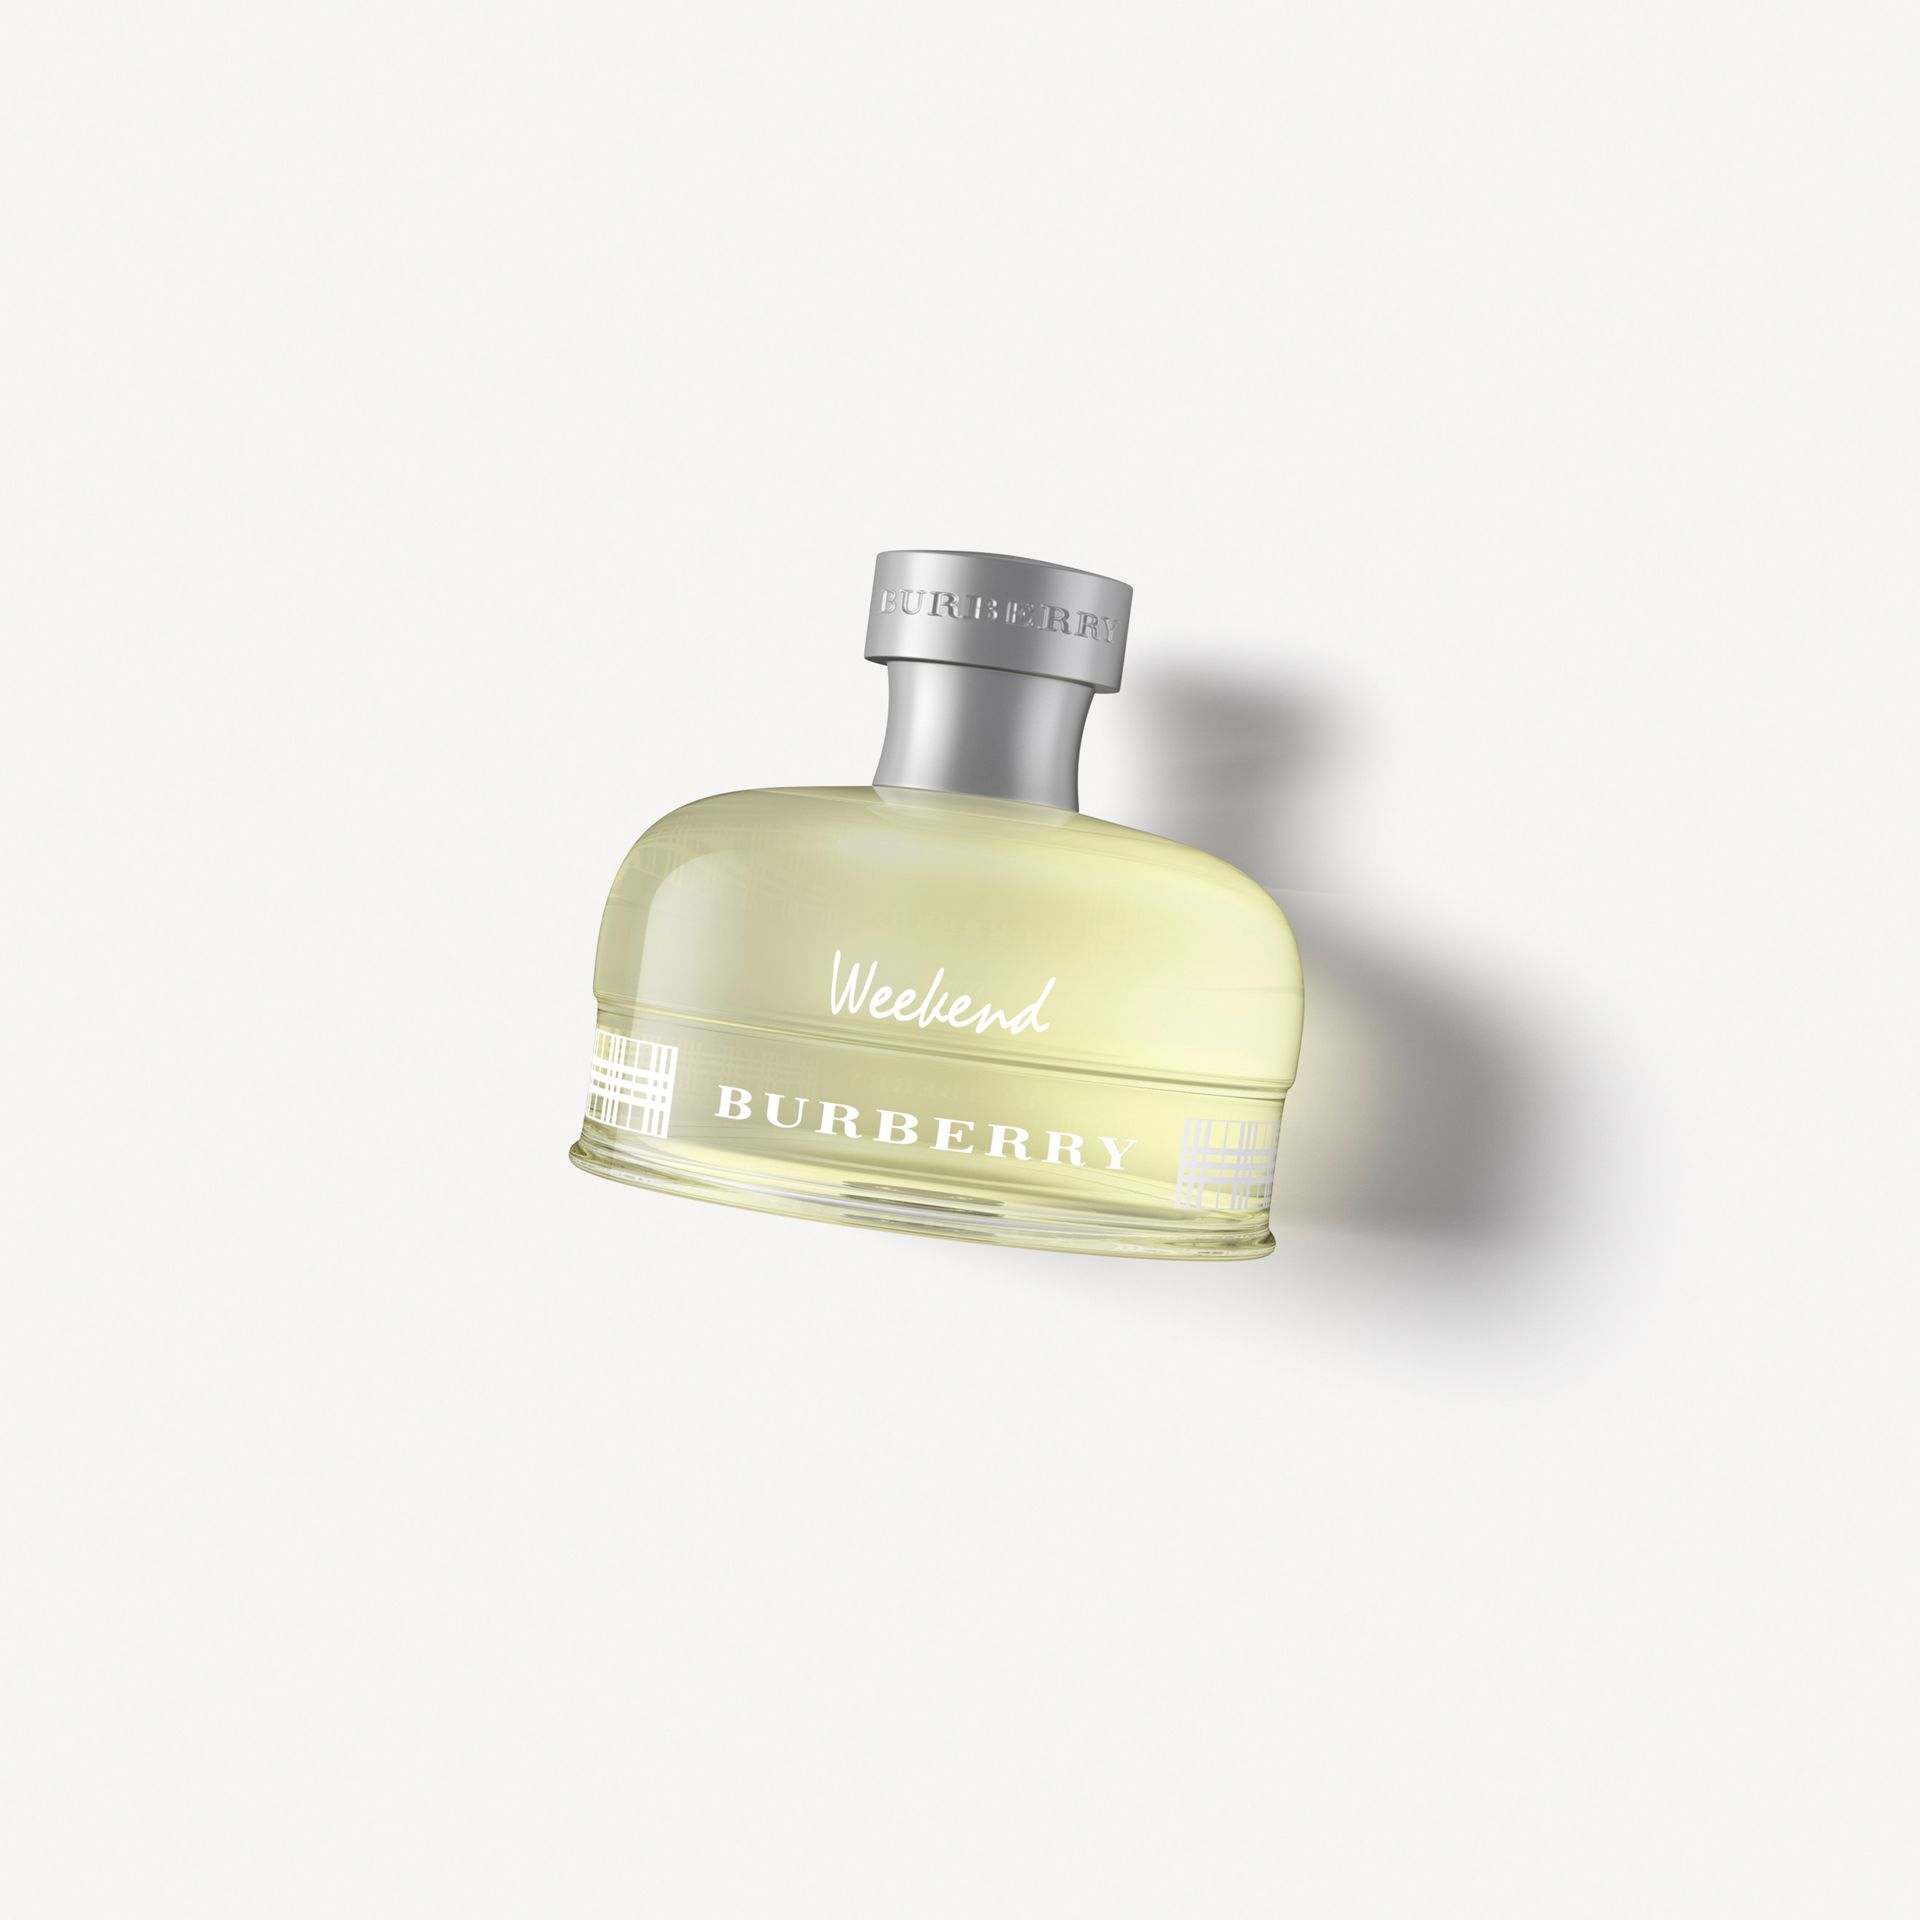 Burberry Weekend Eau de Parfum 100ml - Women | Burberry Singapore - gallery image 0